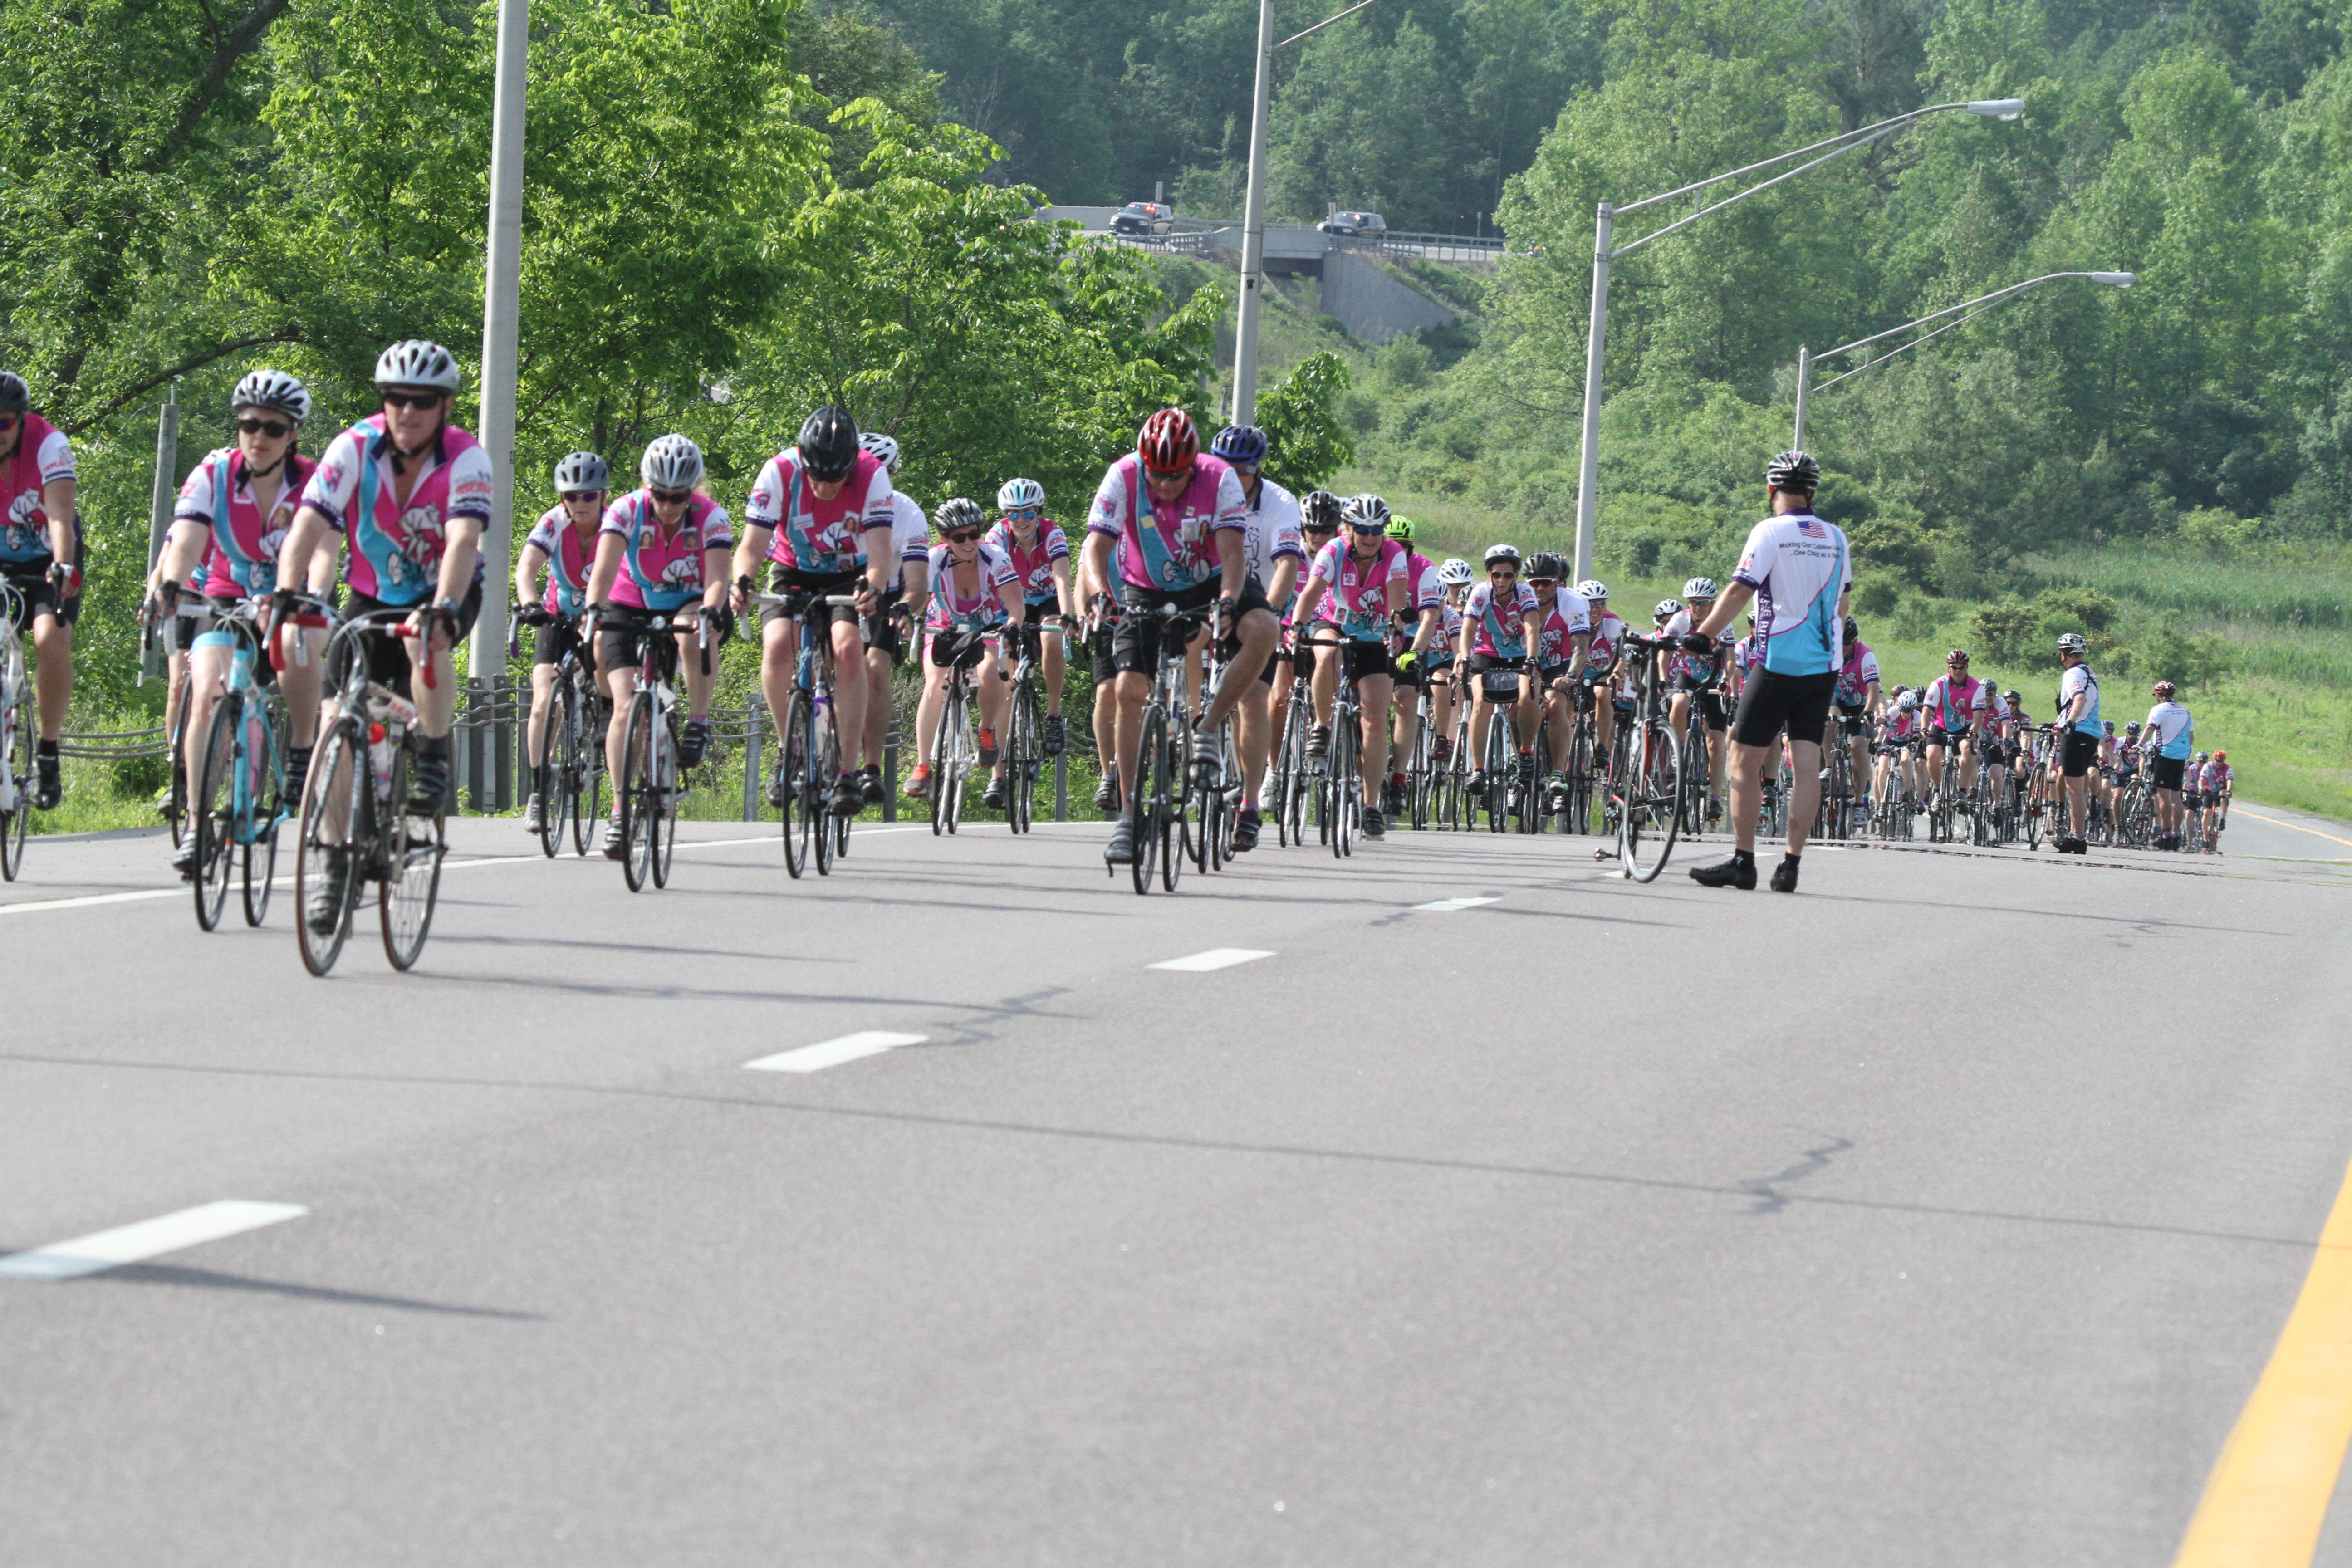 2019 Ride for Missing Children - Utica (CNY) - The Ride For Missing